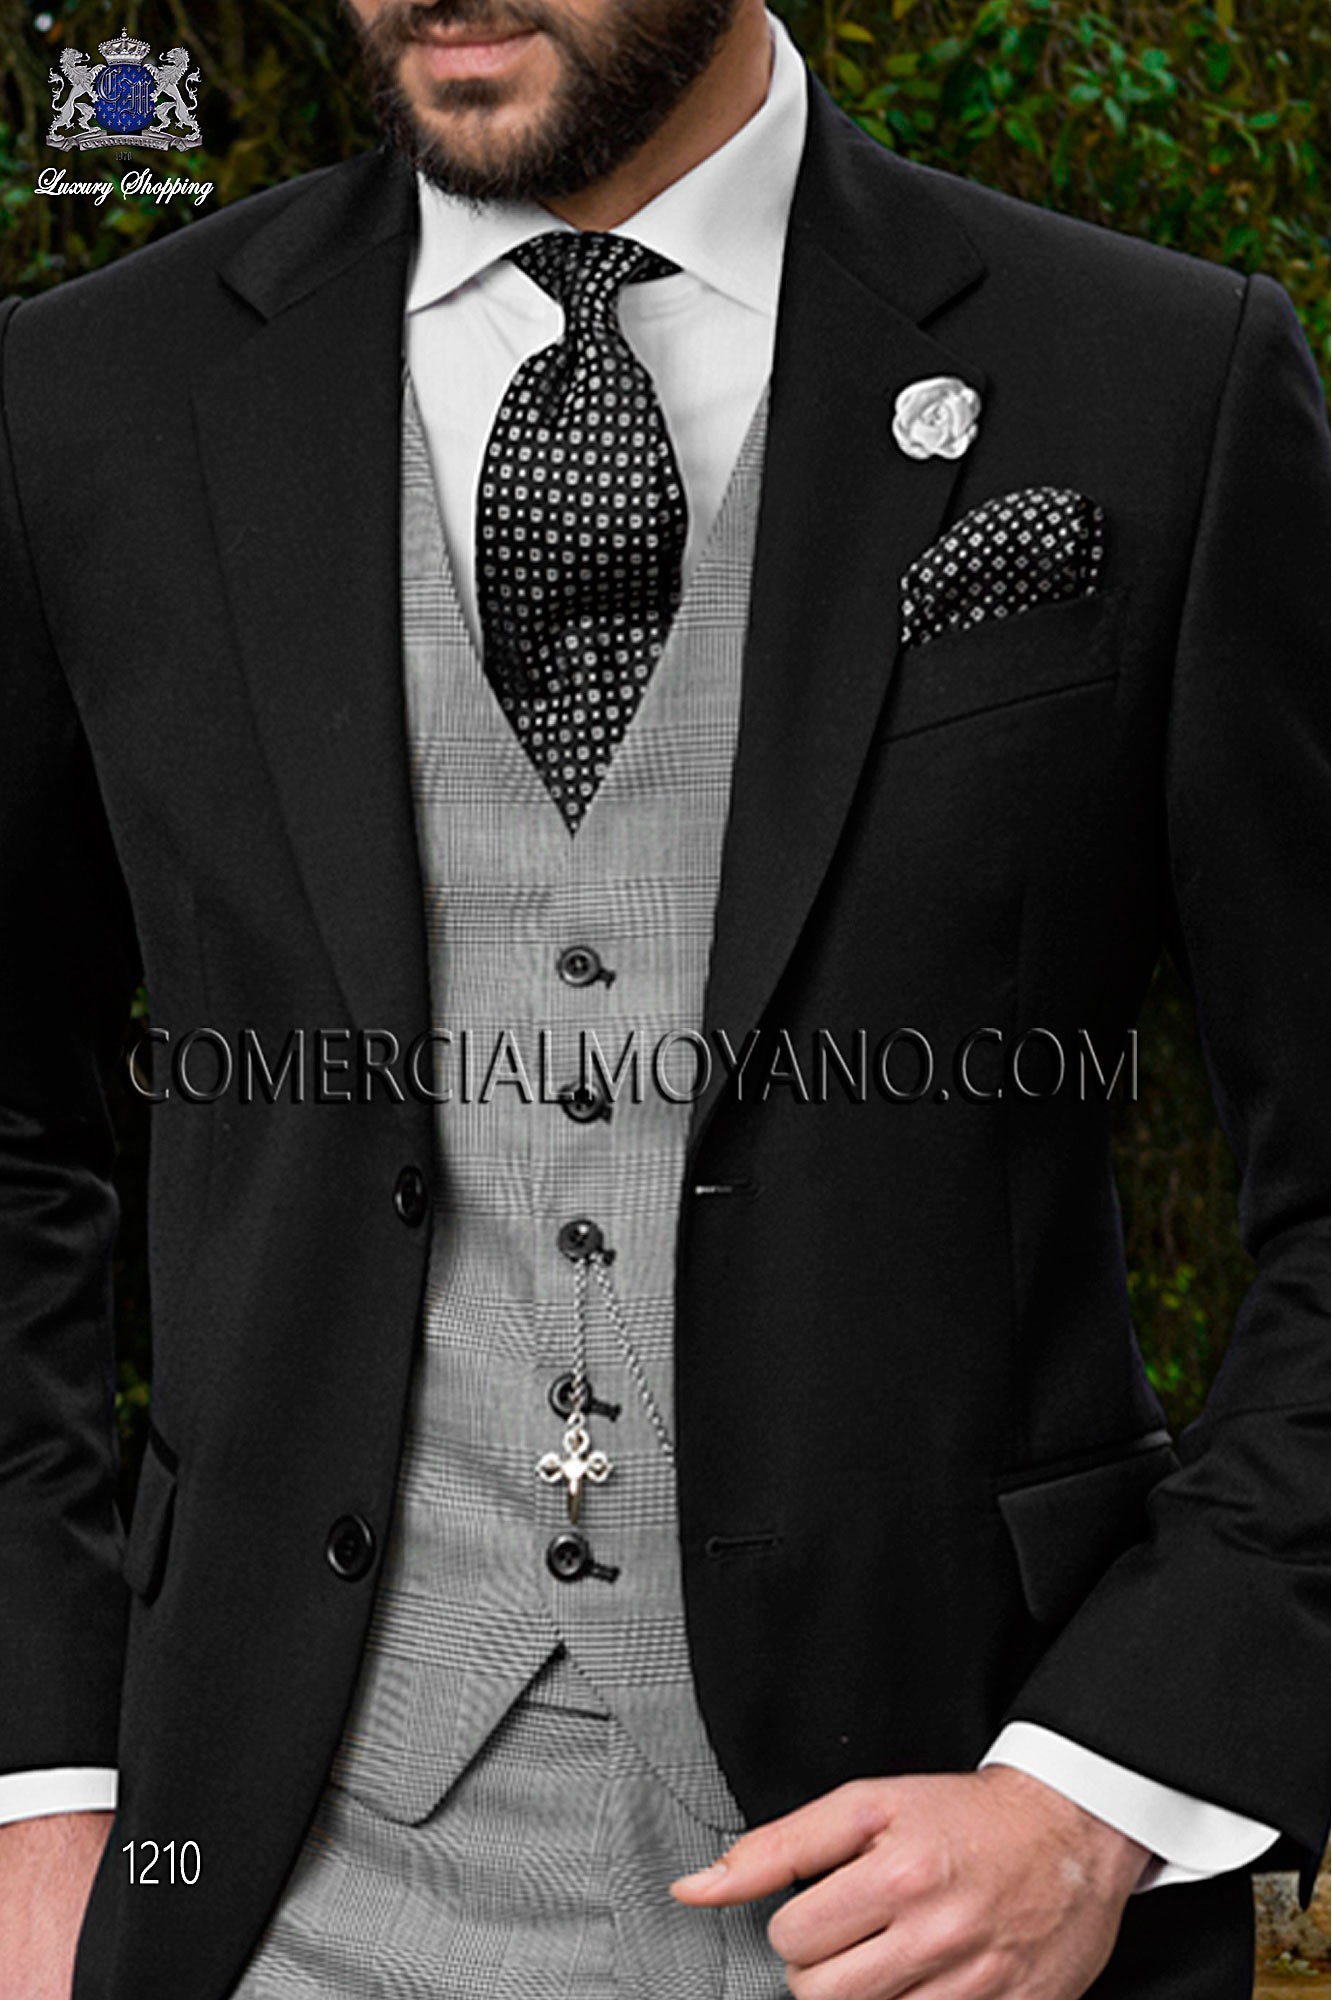 Gentleman black men wedding suit, model: 1210 Ottavio Nuccio Gala ...